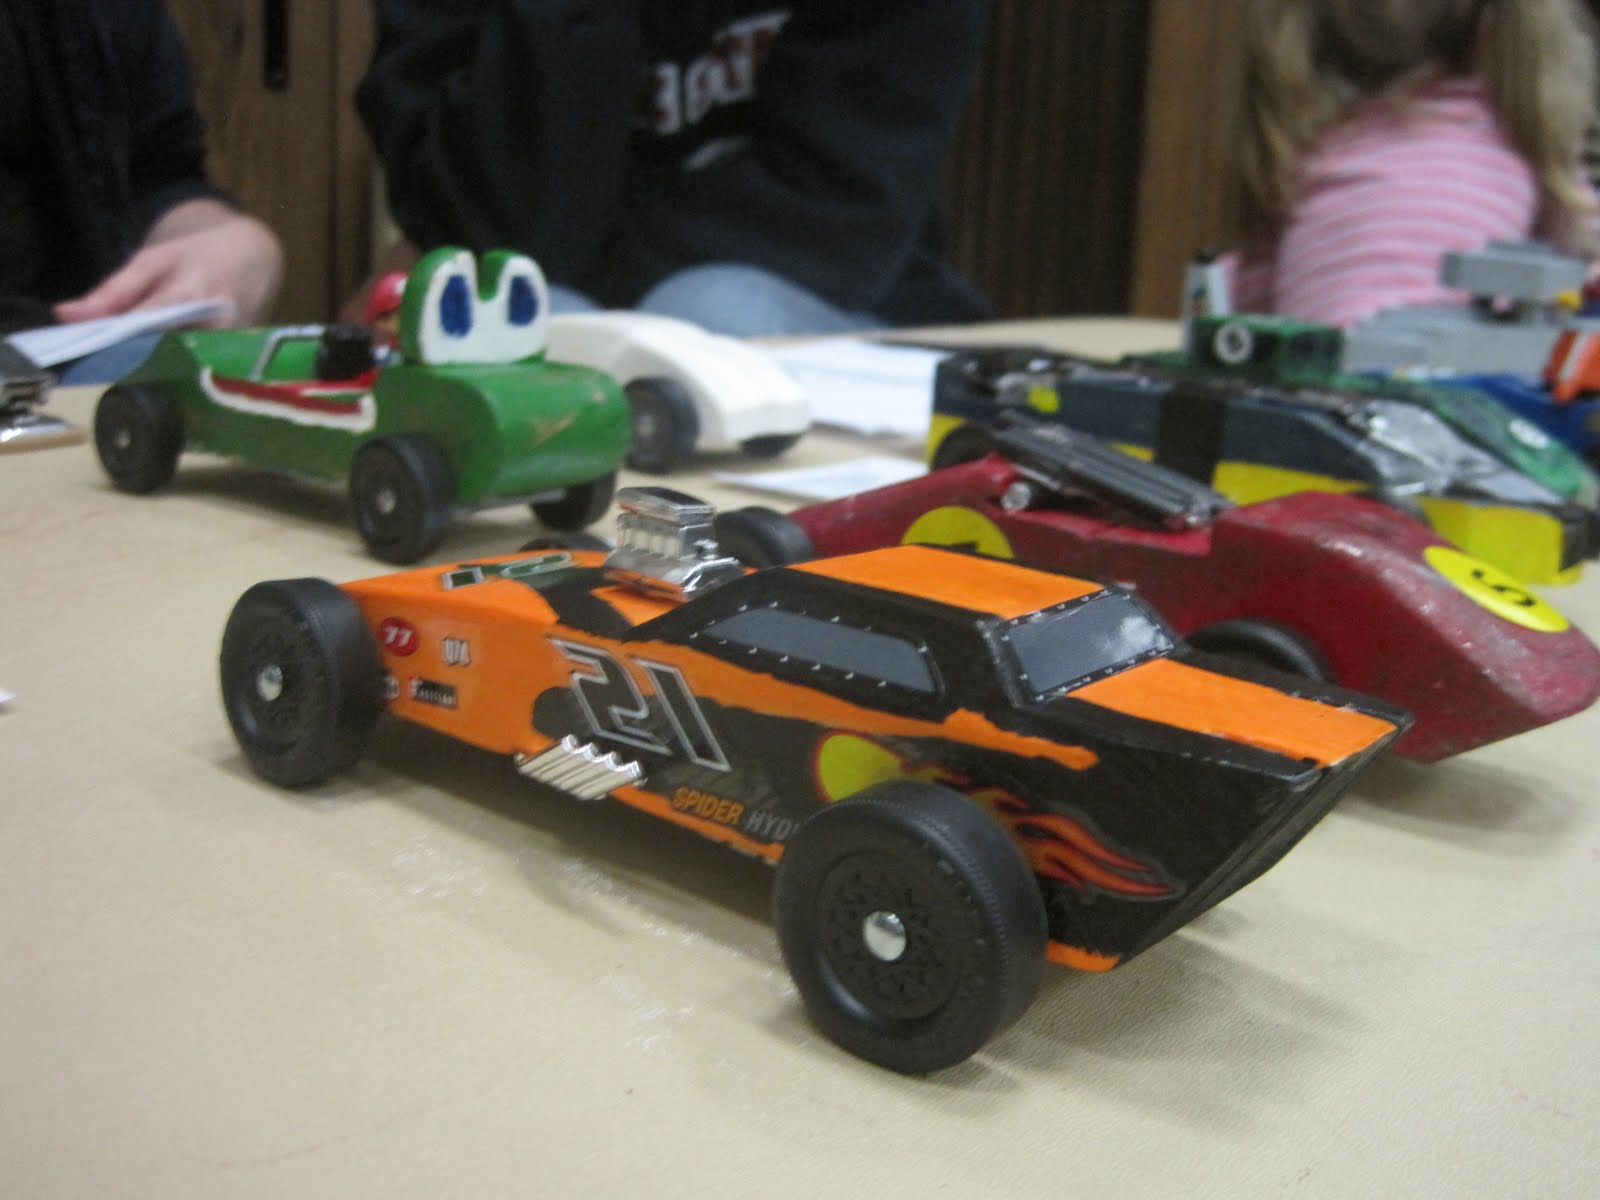 Pinewood derby car paint job ideas